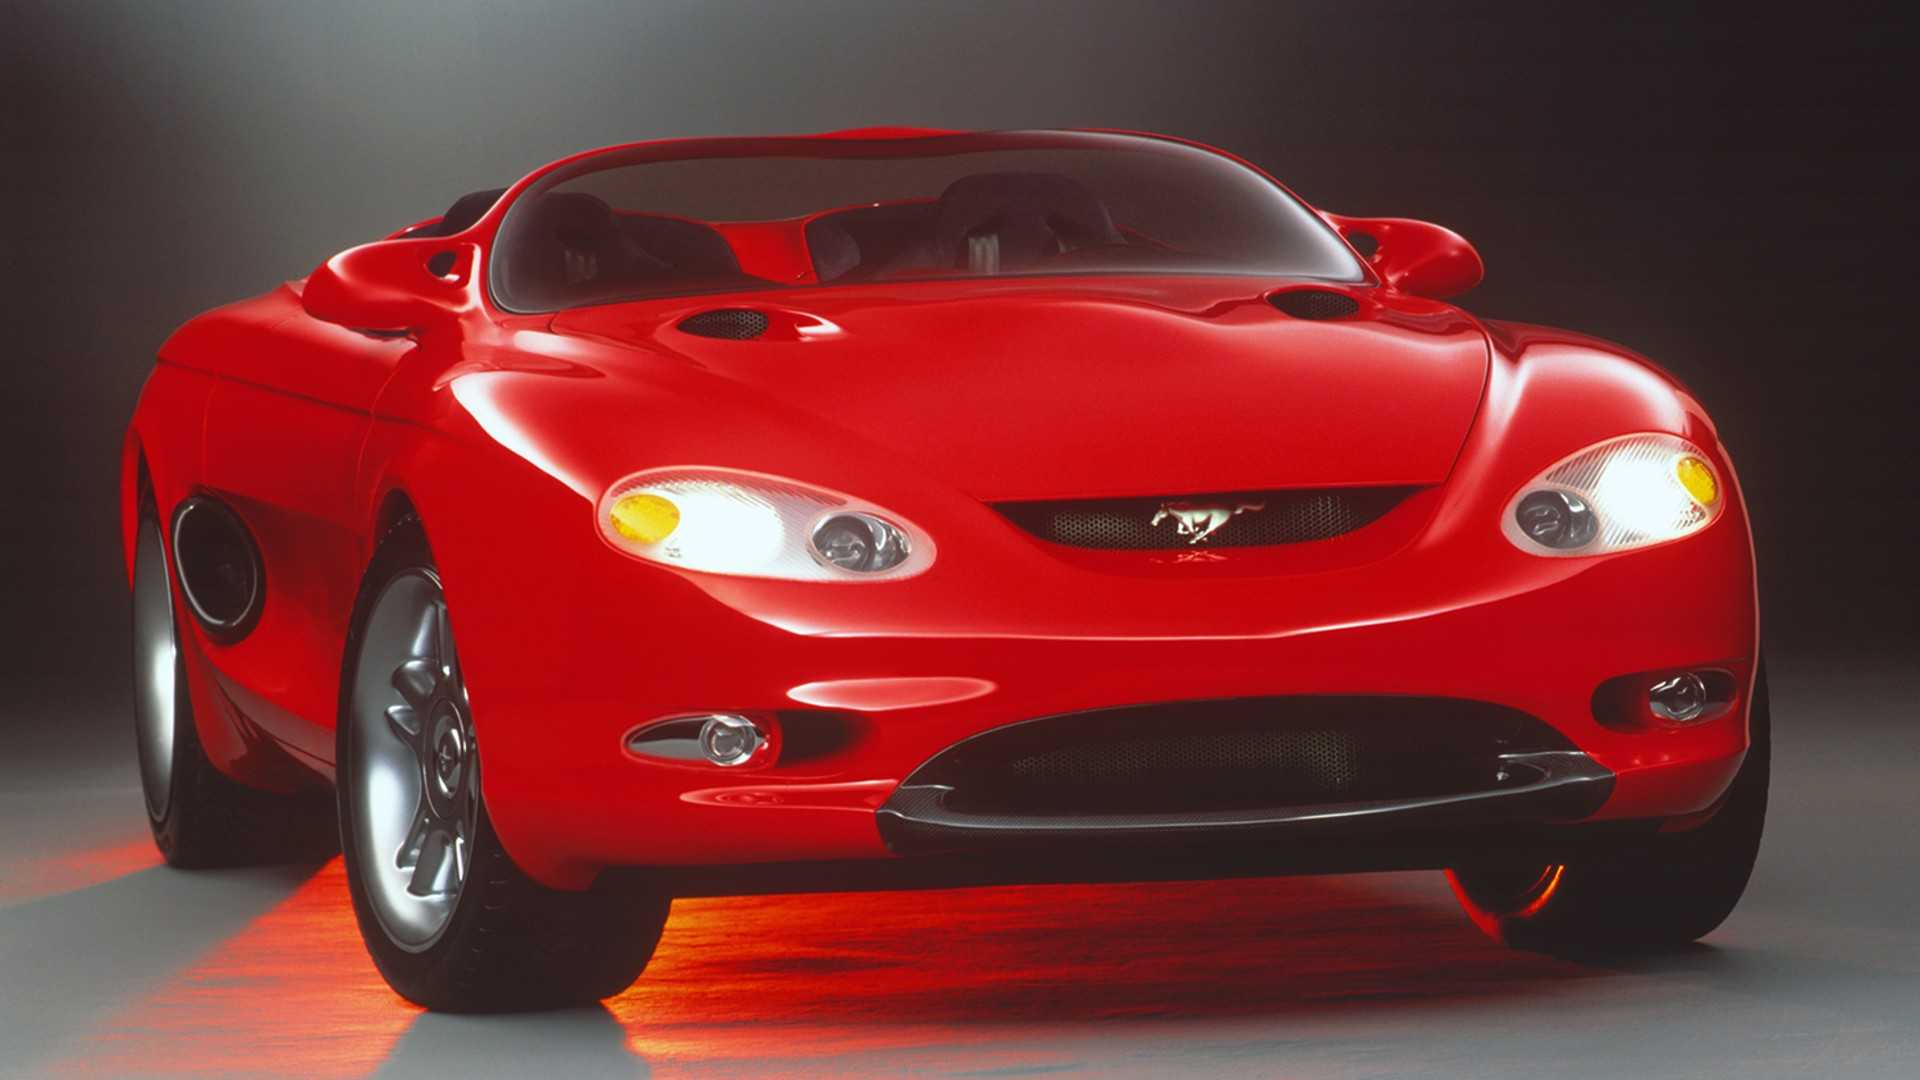 Ford Concept Cars >> 13 Long Lost Ford Mustang Concept Cars Motorious